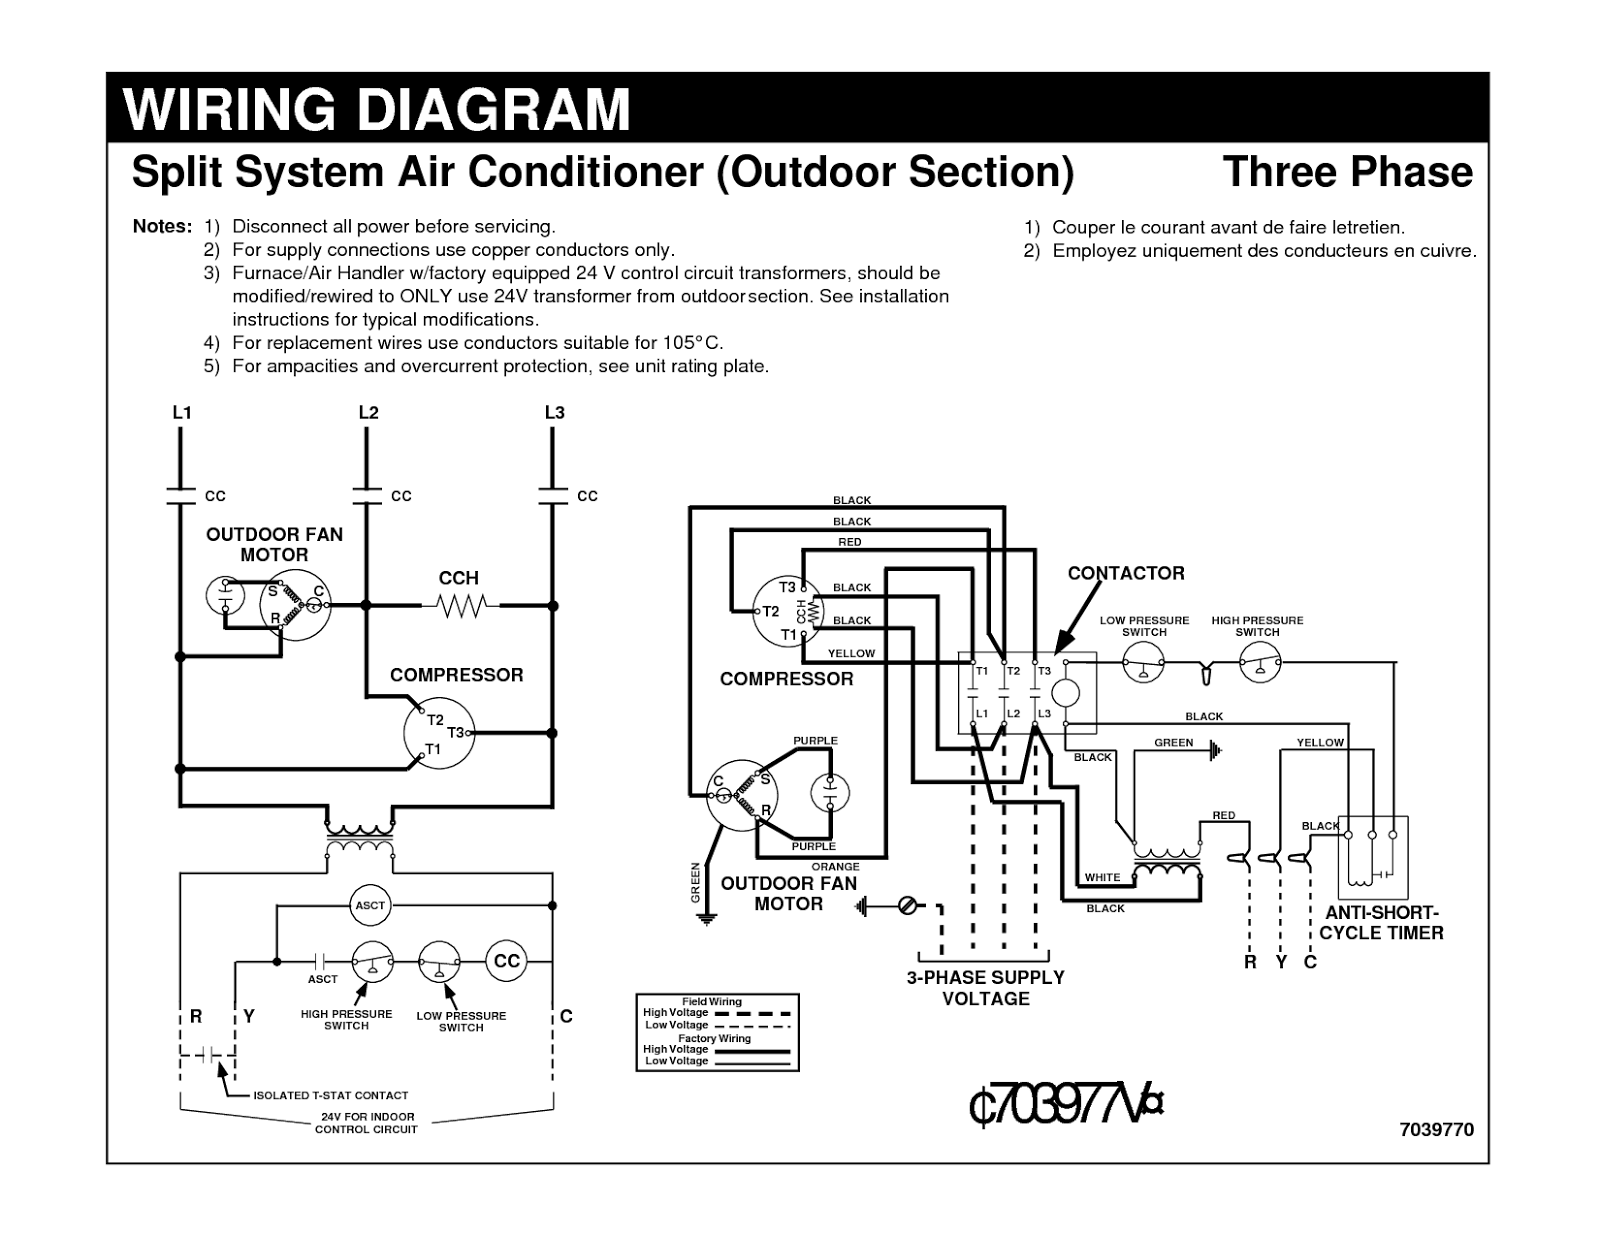 hvac panel wiring wiring diagram detailed hvac fan relay wiring diagram hvac panel wiring trusted wiring [ 1600 x 1236 Pixel ]